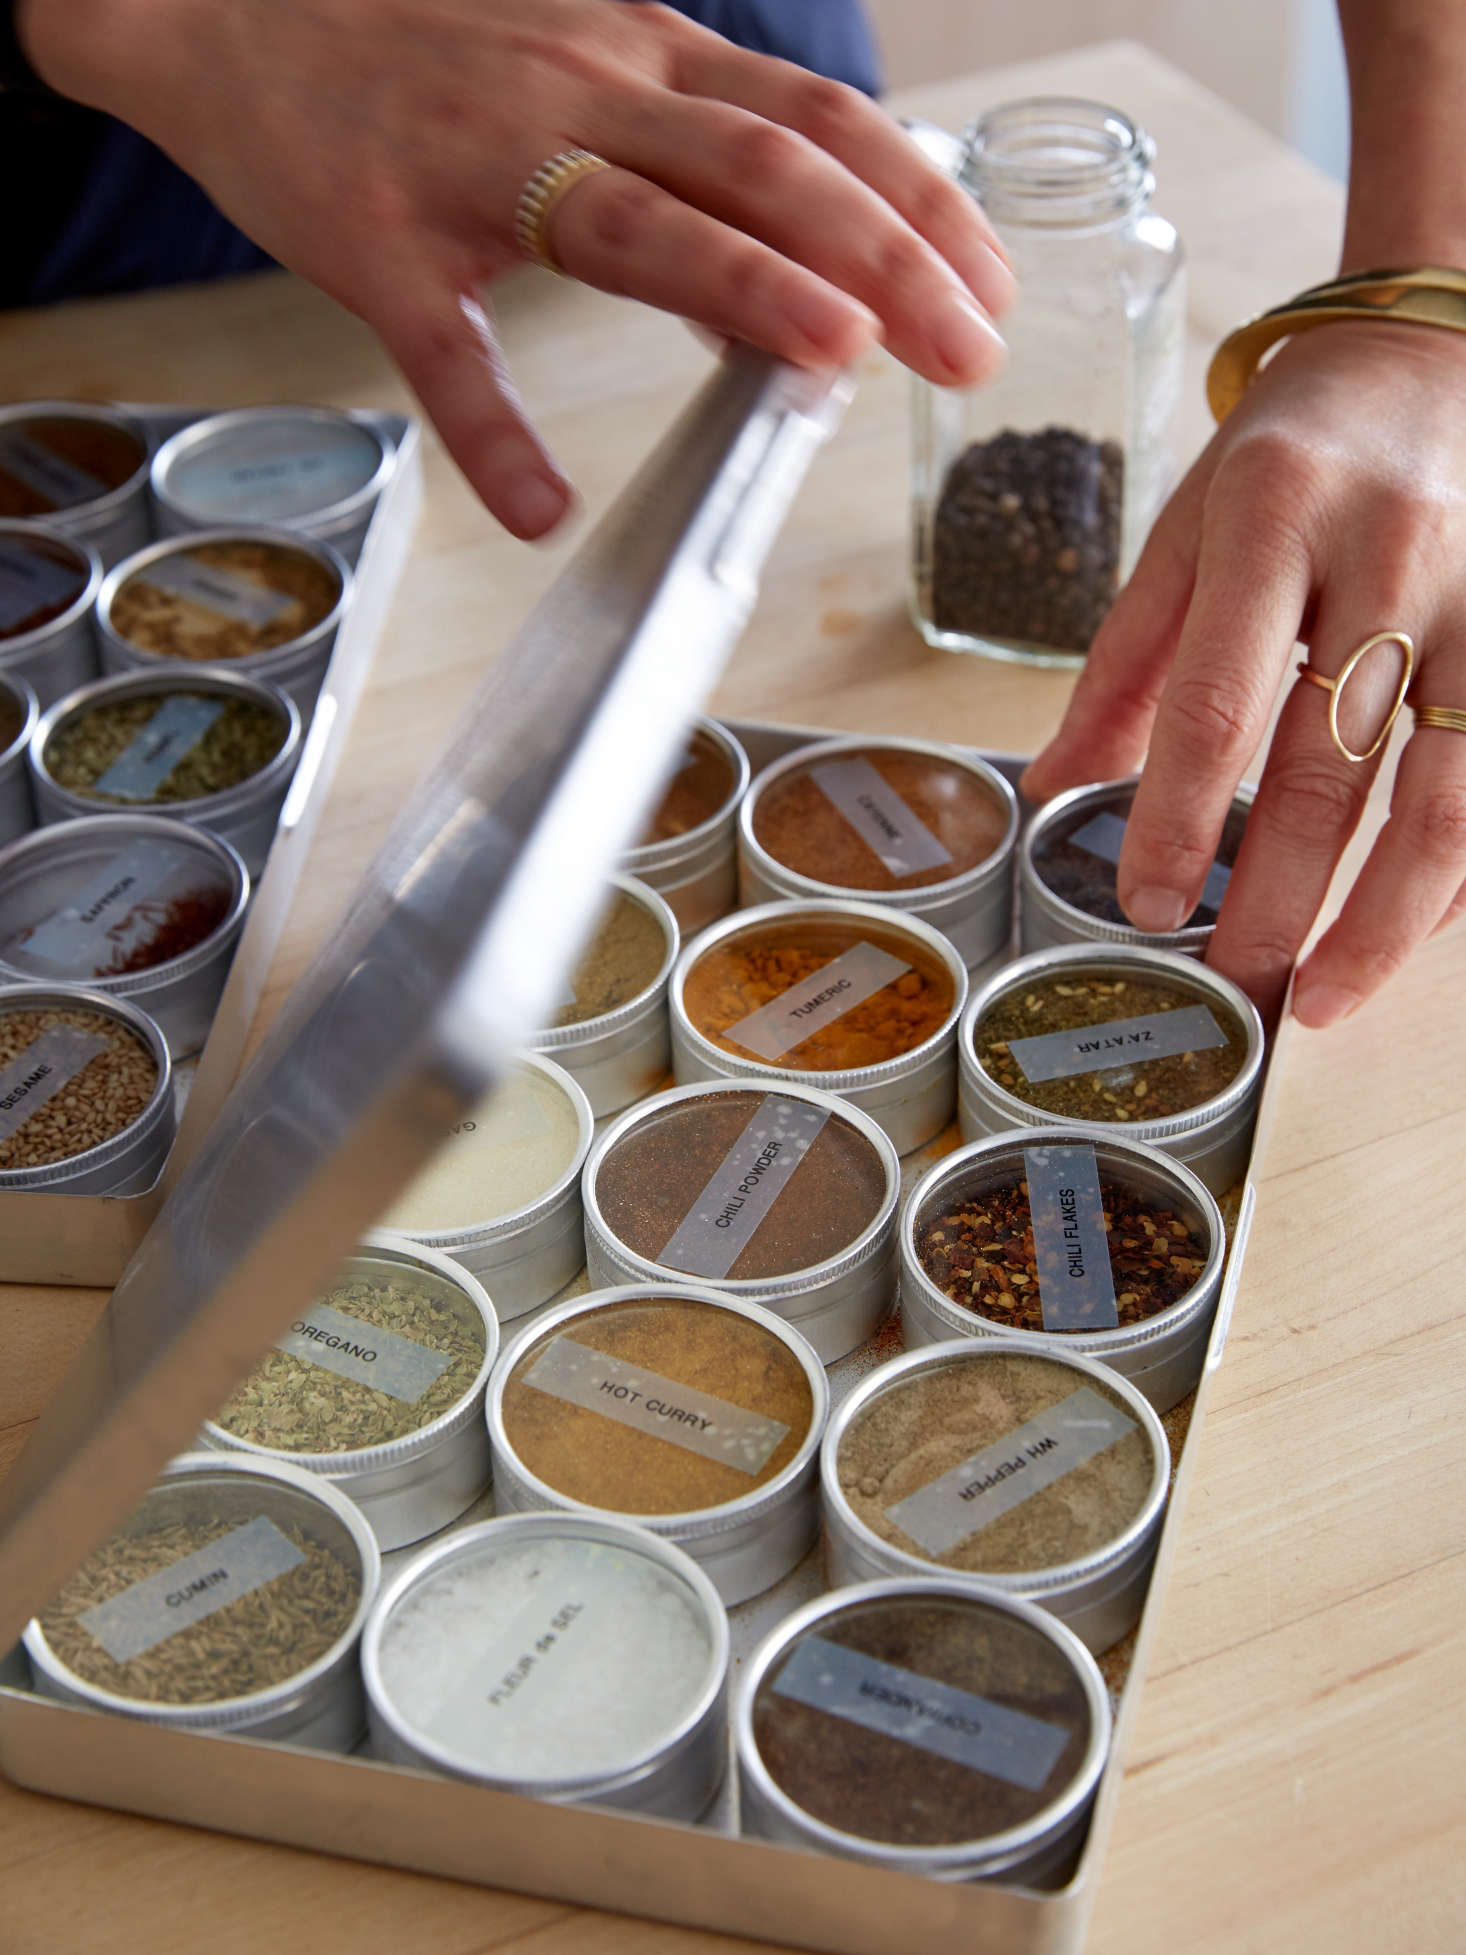 Spice storage idea for compact kitchens: tin boxes with glass tops